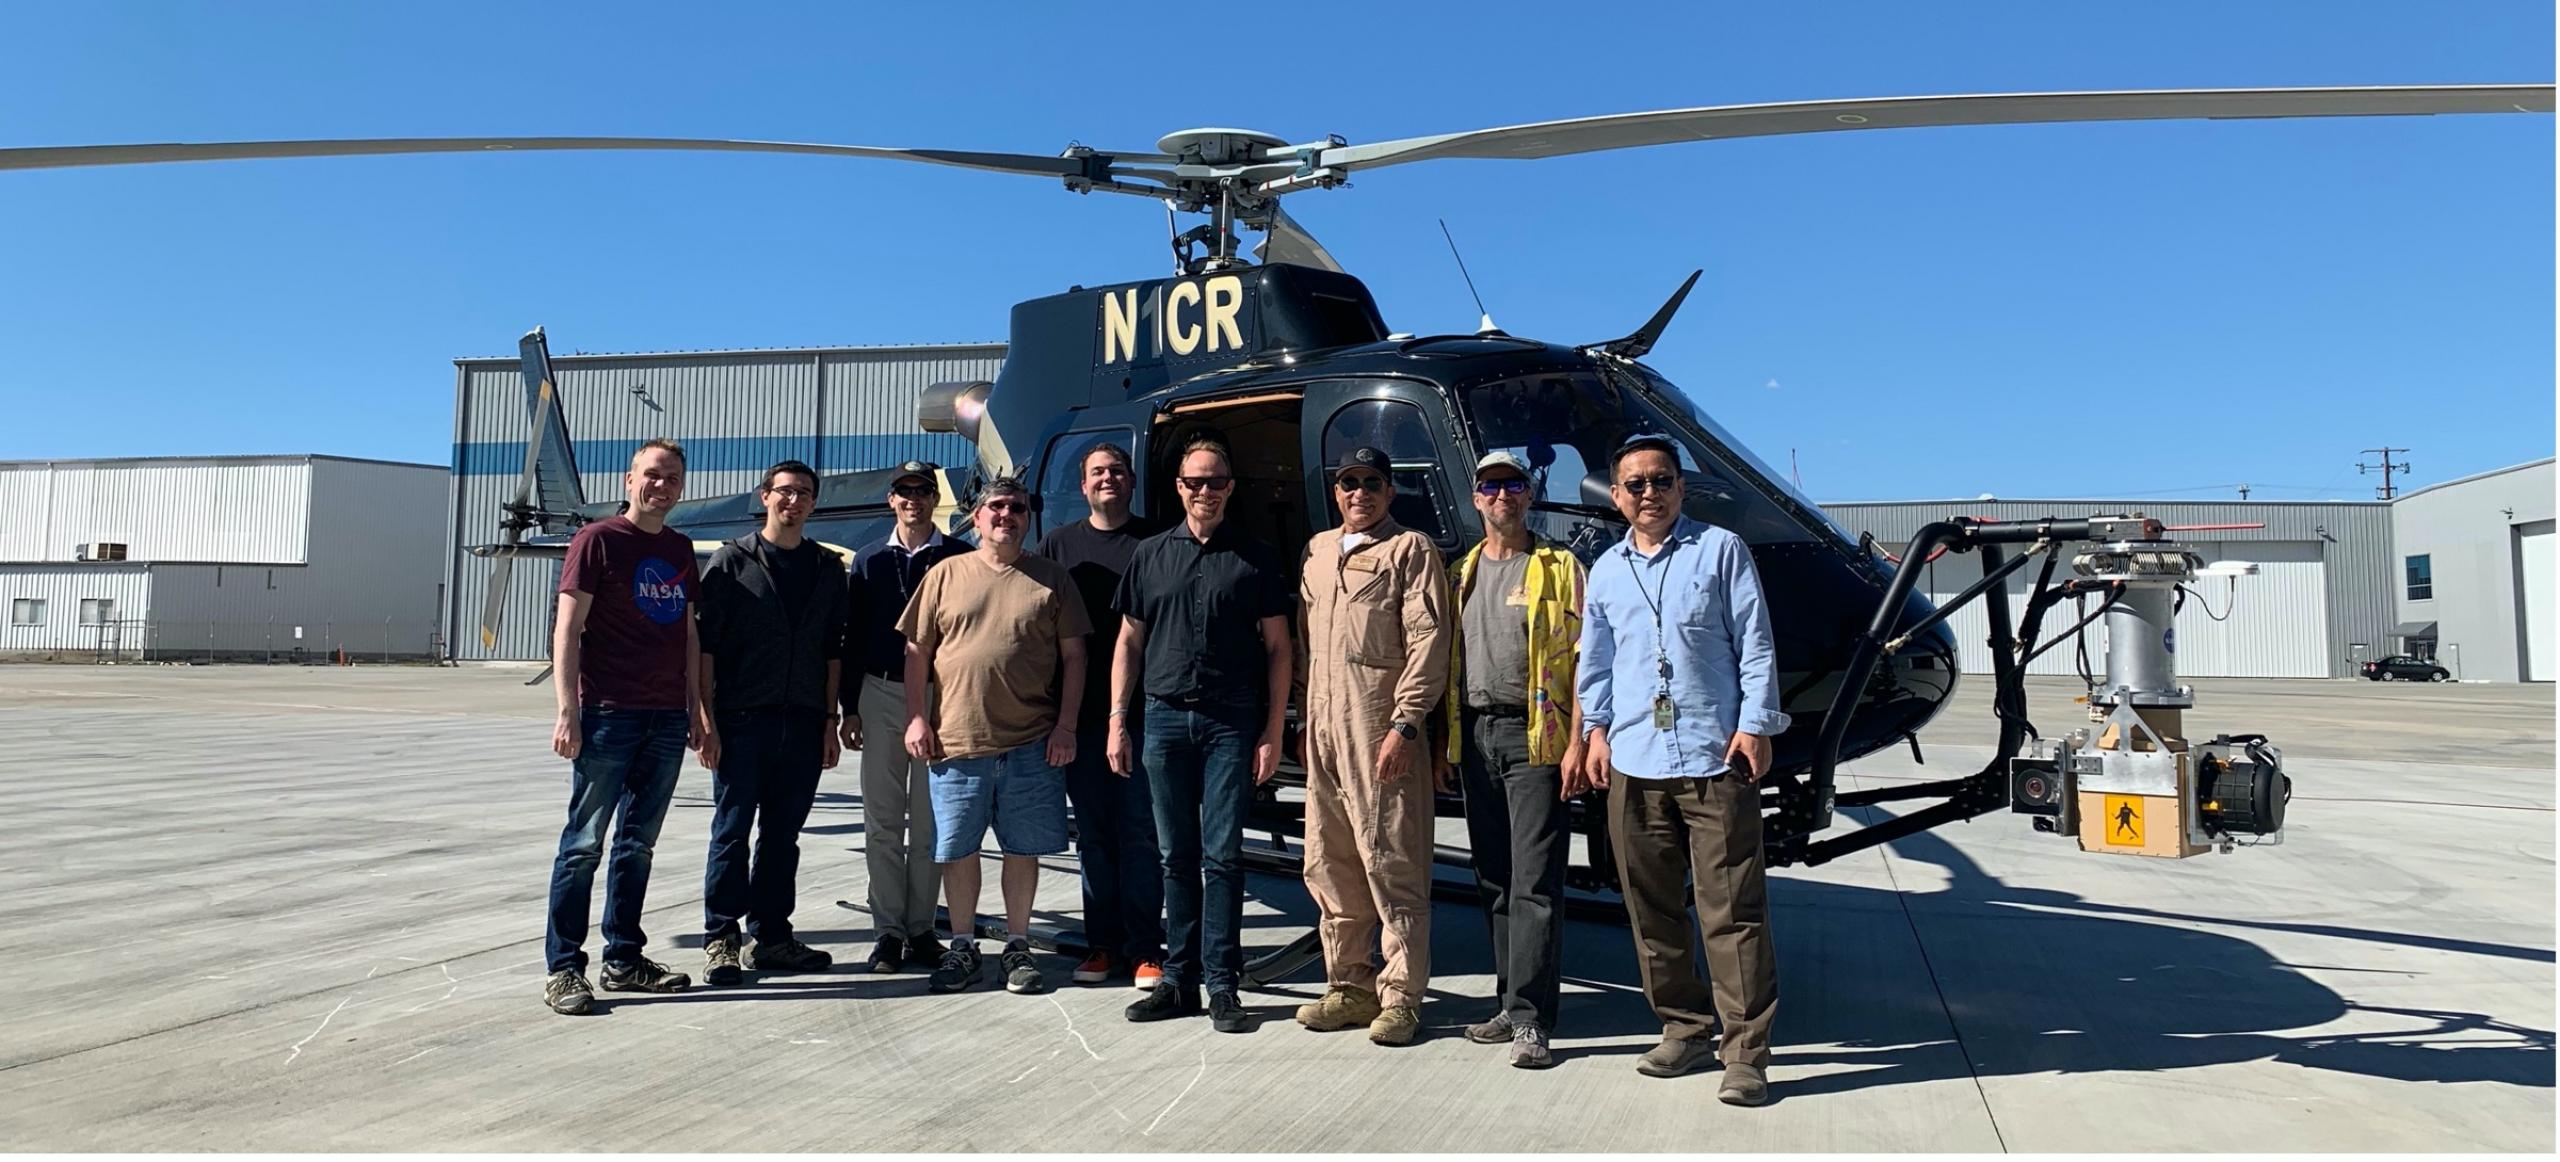 Photo of men standing in front of a helicopter